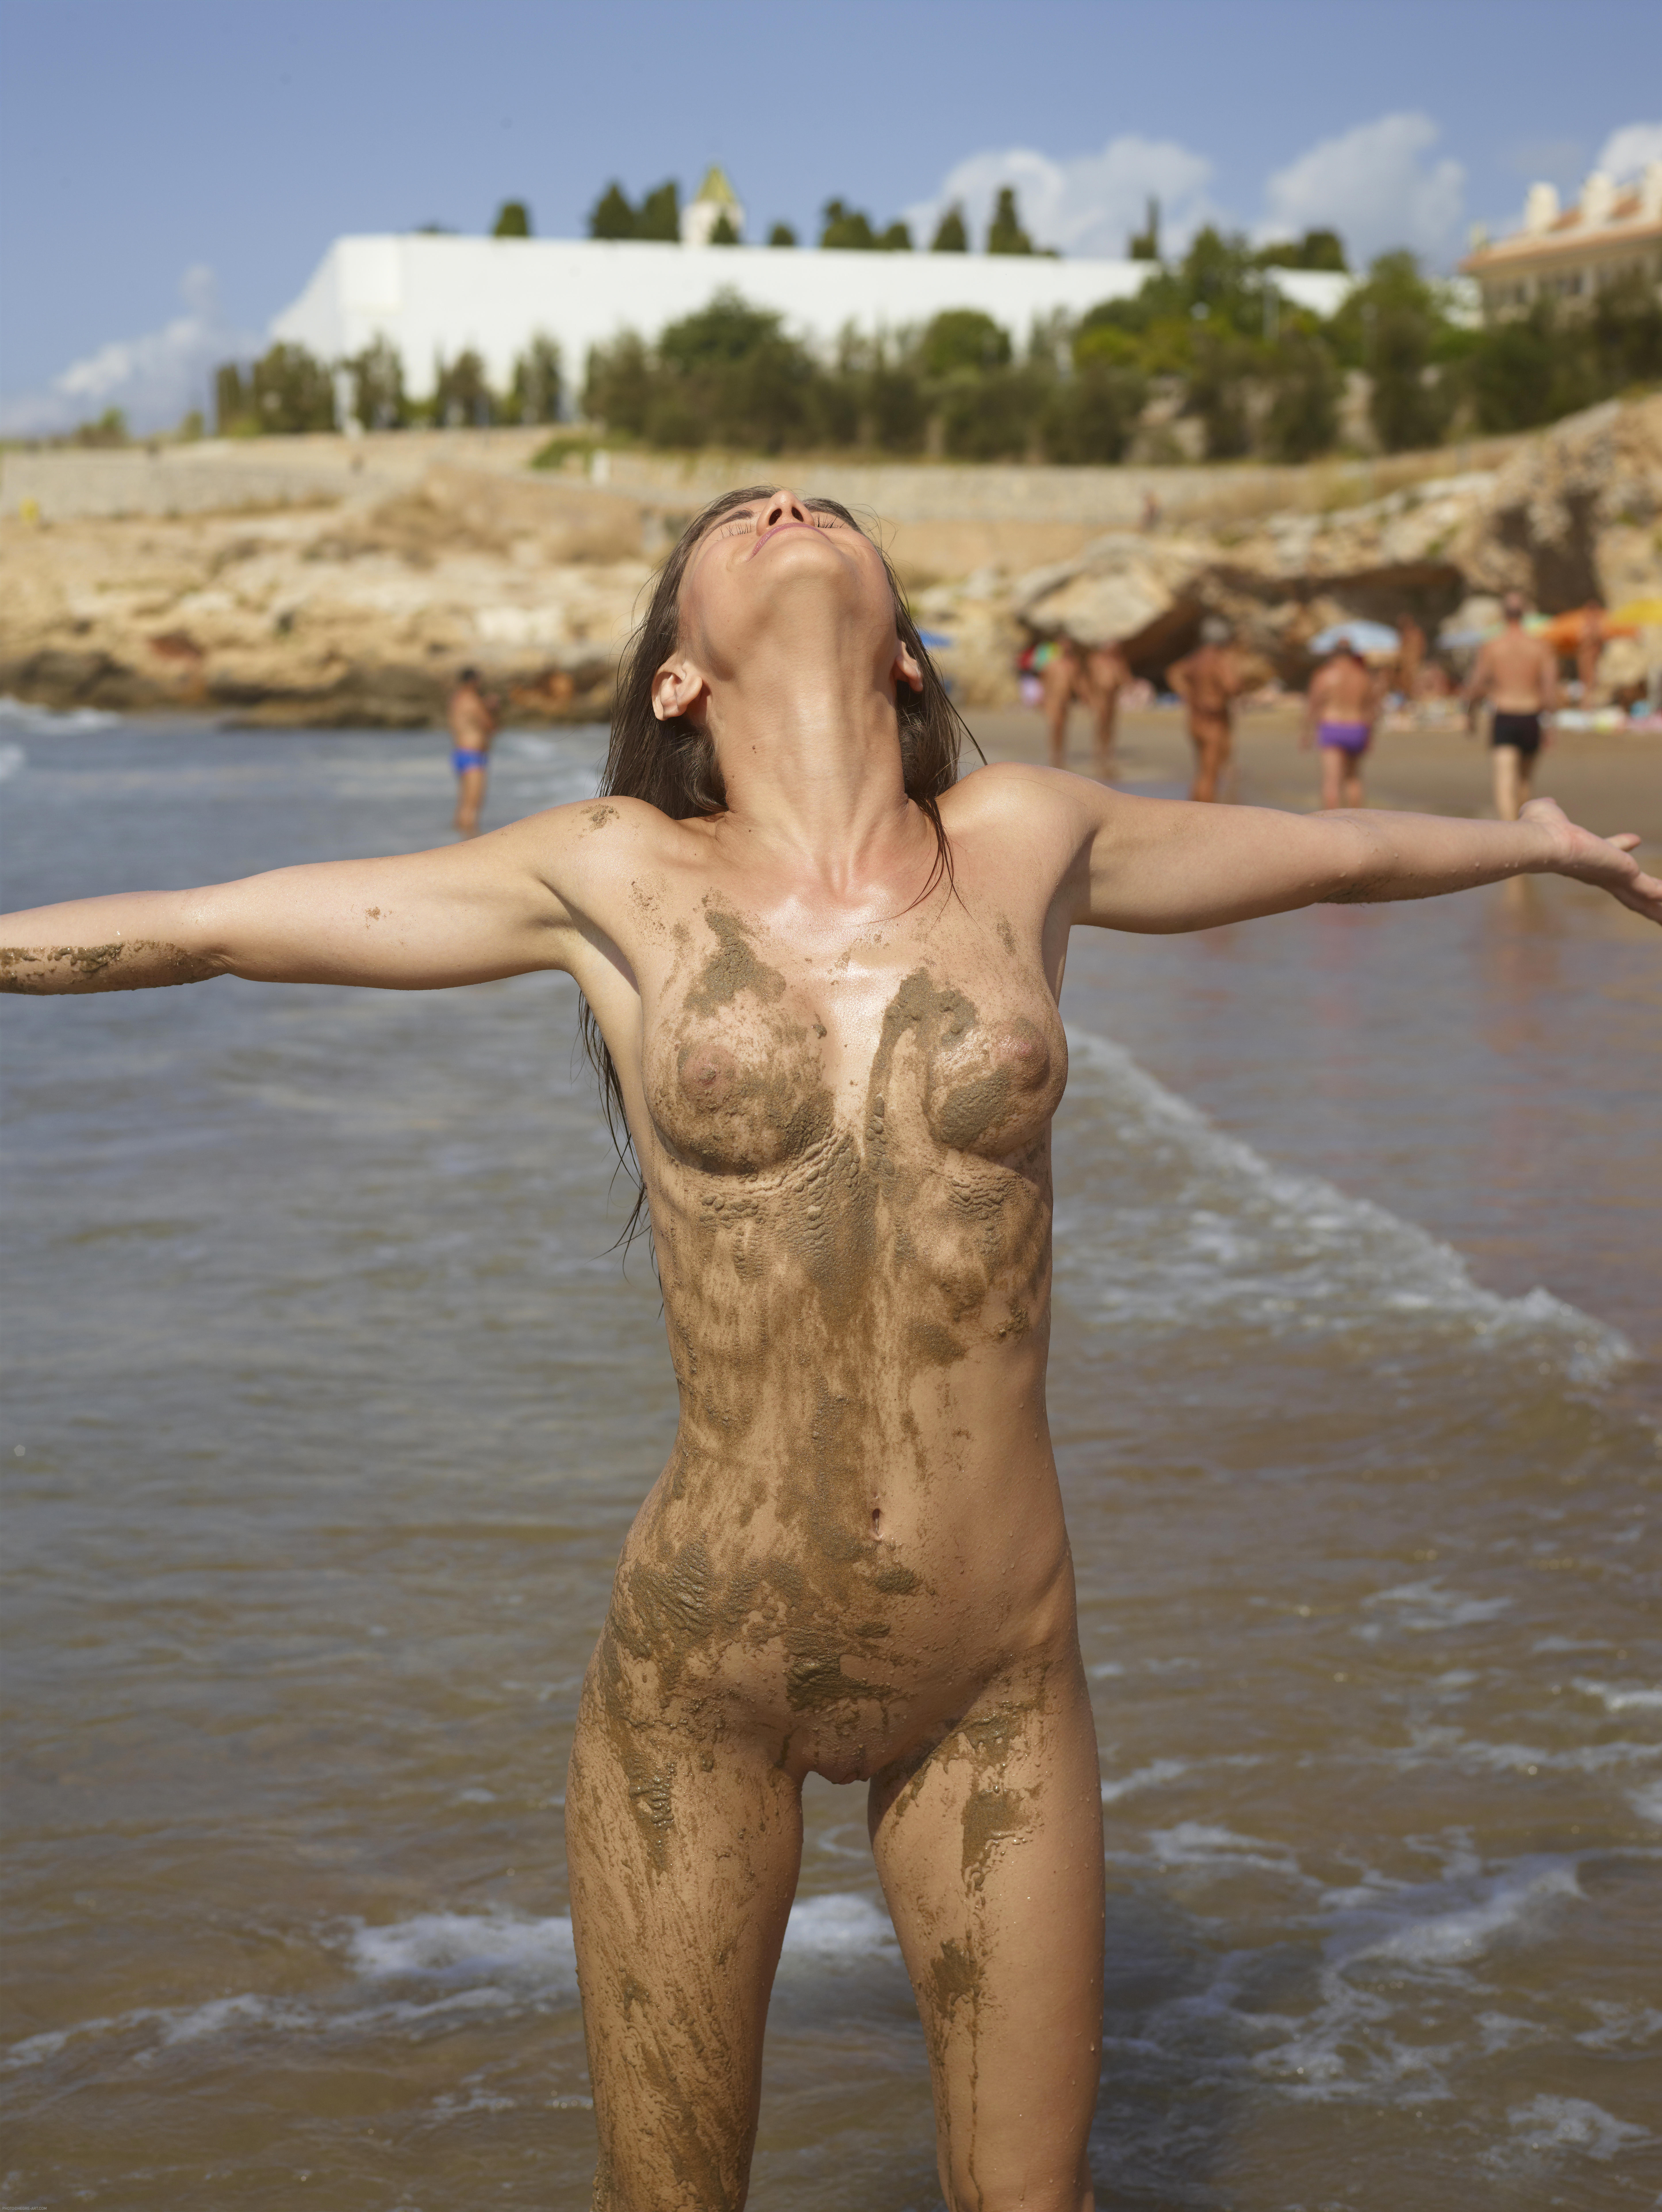 Family Nudist  nudistsaunacom